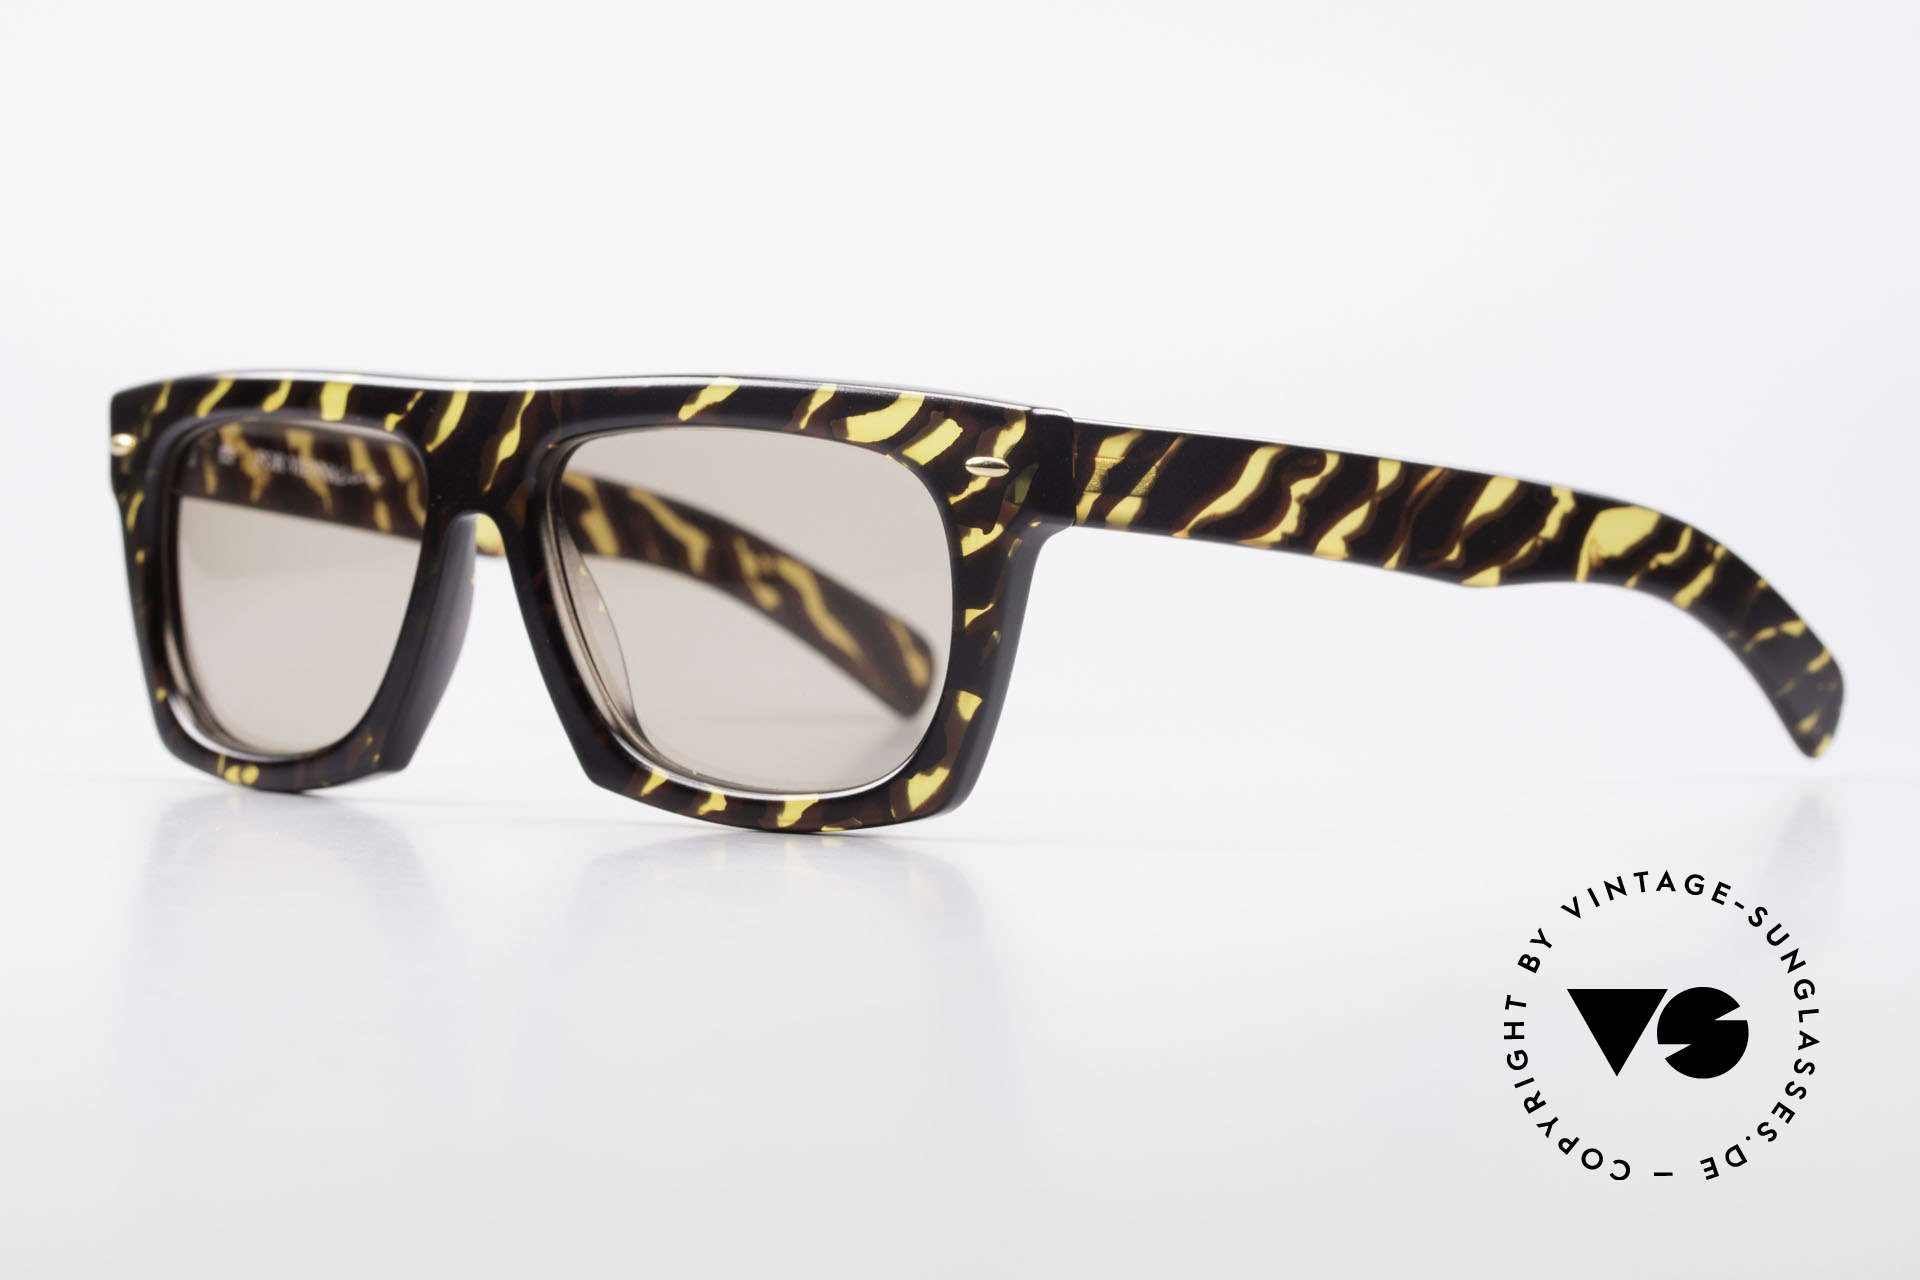 Paloma Picasso 1460 No Retro Shades 90's Original, striking 90's frame in cooperation with ViennaLine, Made for Men and Women